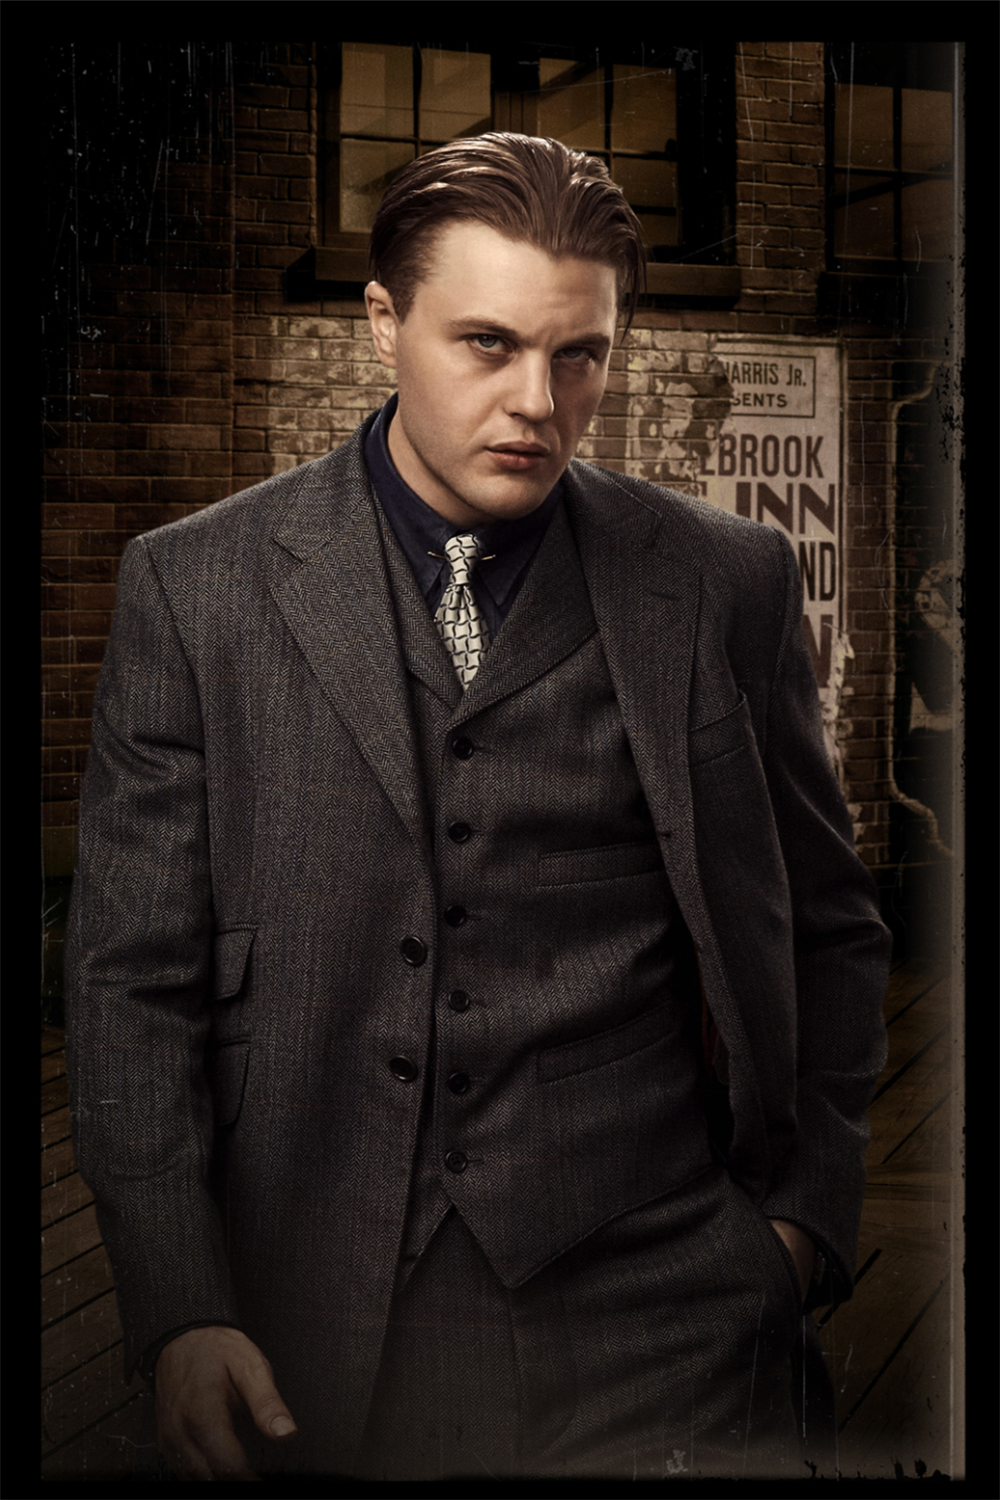 HBO - Michael Pitt in Boardwalk Empire - Brooklyn, NY